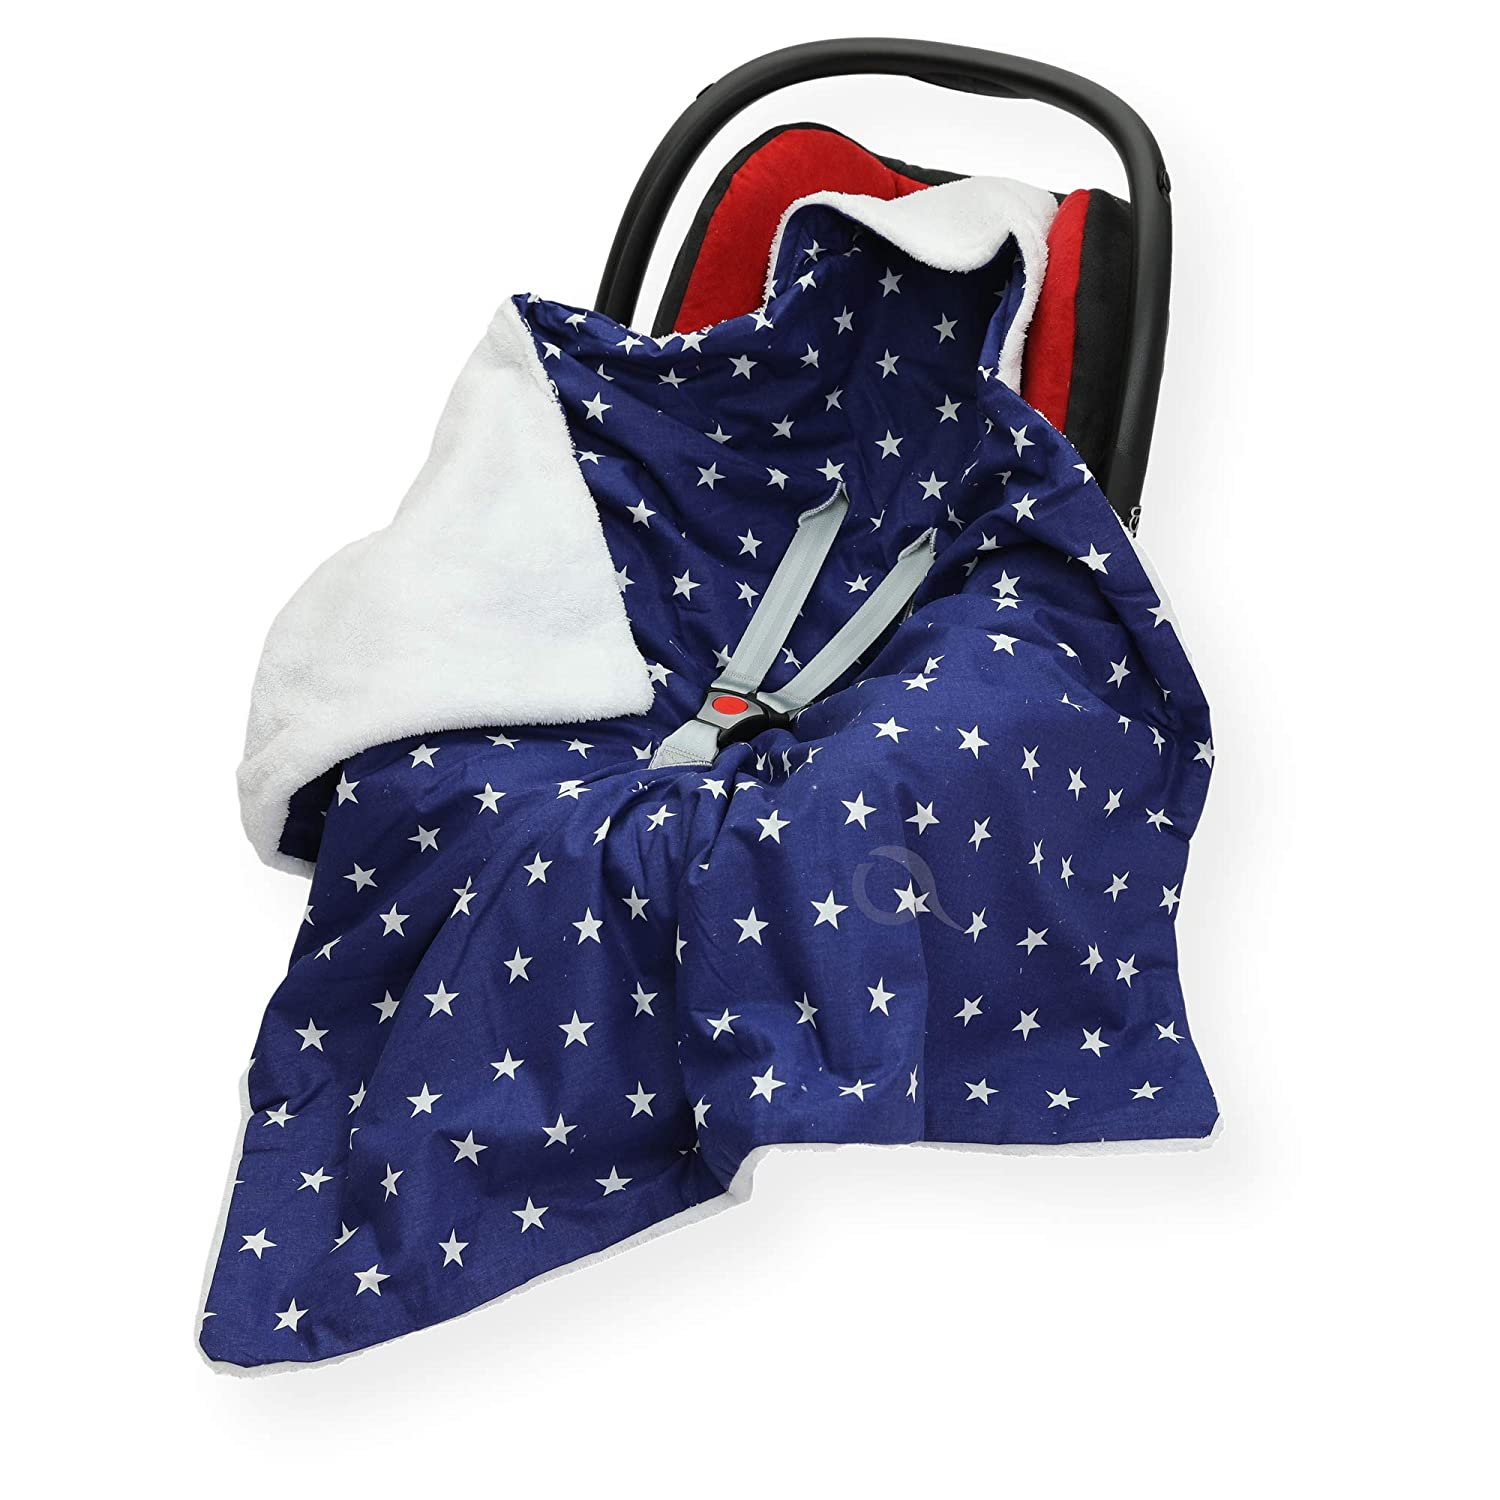 Double - Sided CAR SEAT Blanket/Cover / COSYTOES - FOOTMUFF 100 x 100cm Hooded Blanket with SEAT Belt Holes (SM Star at Grey/b Pink) OLO Direct Ltd